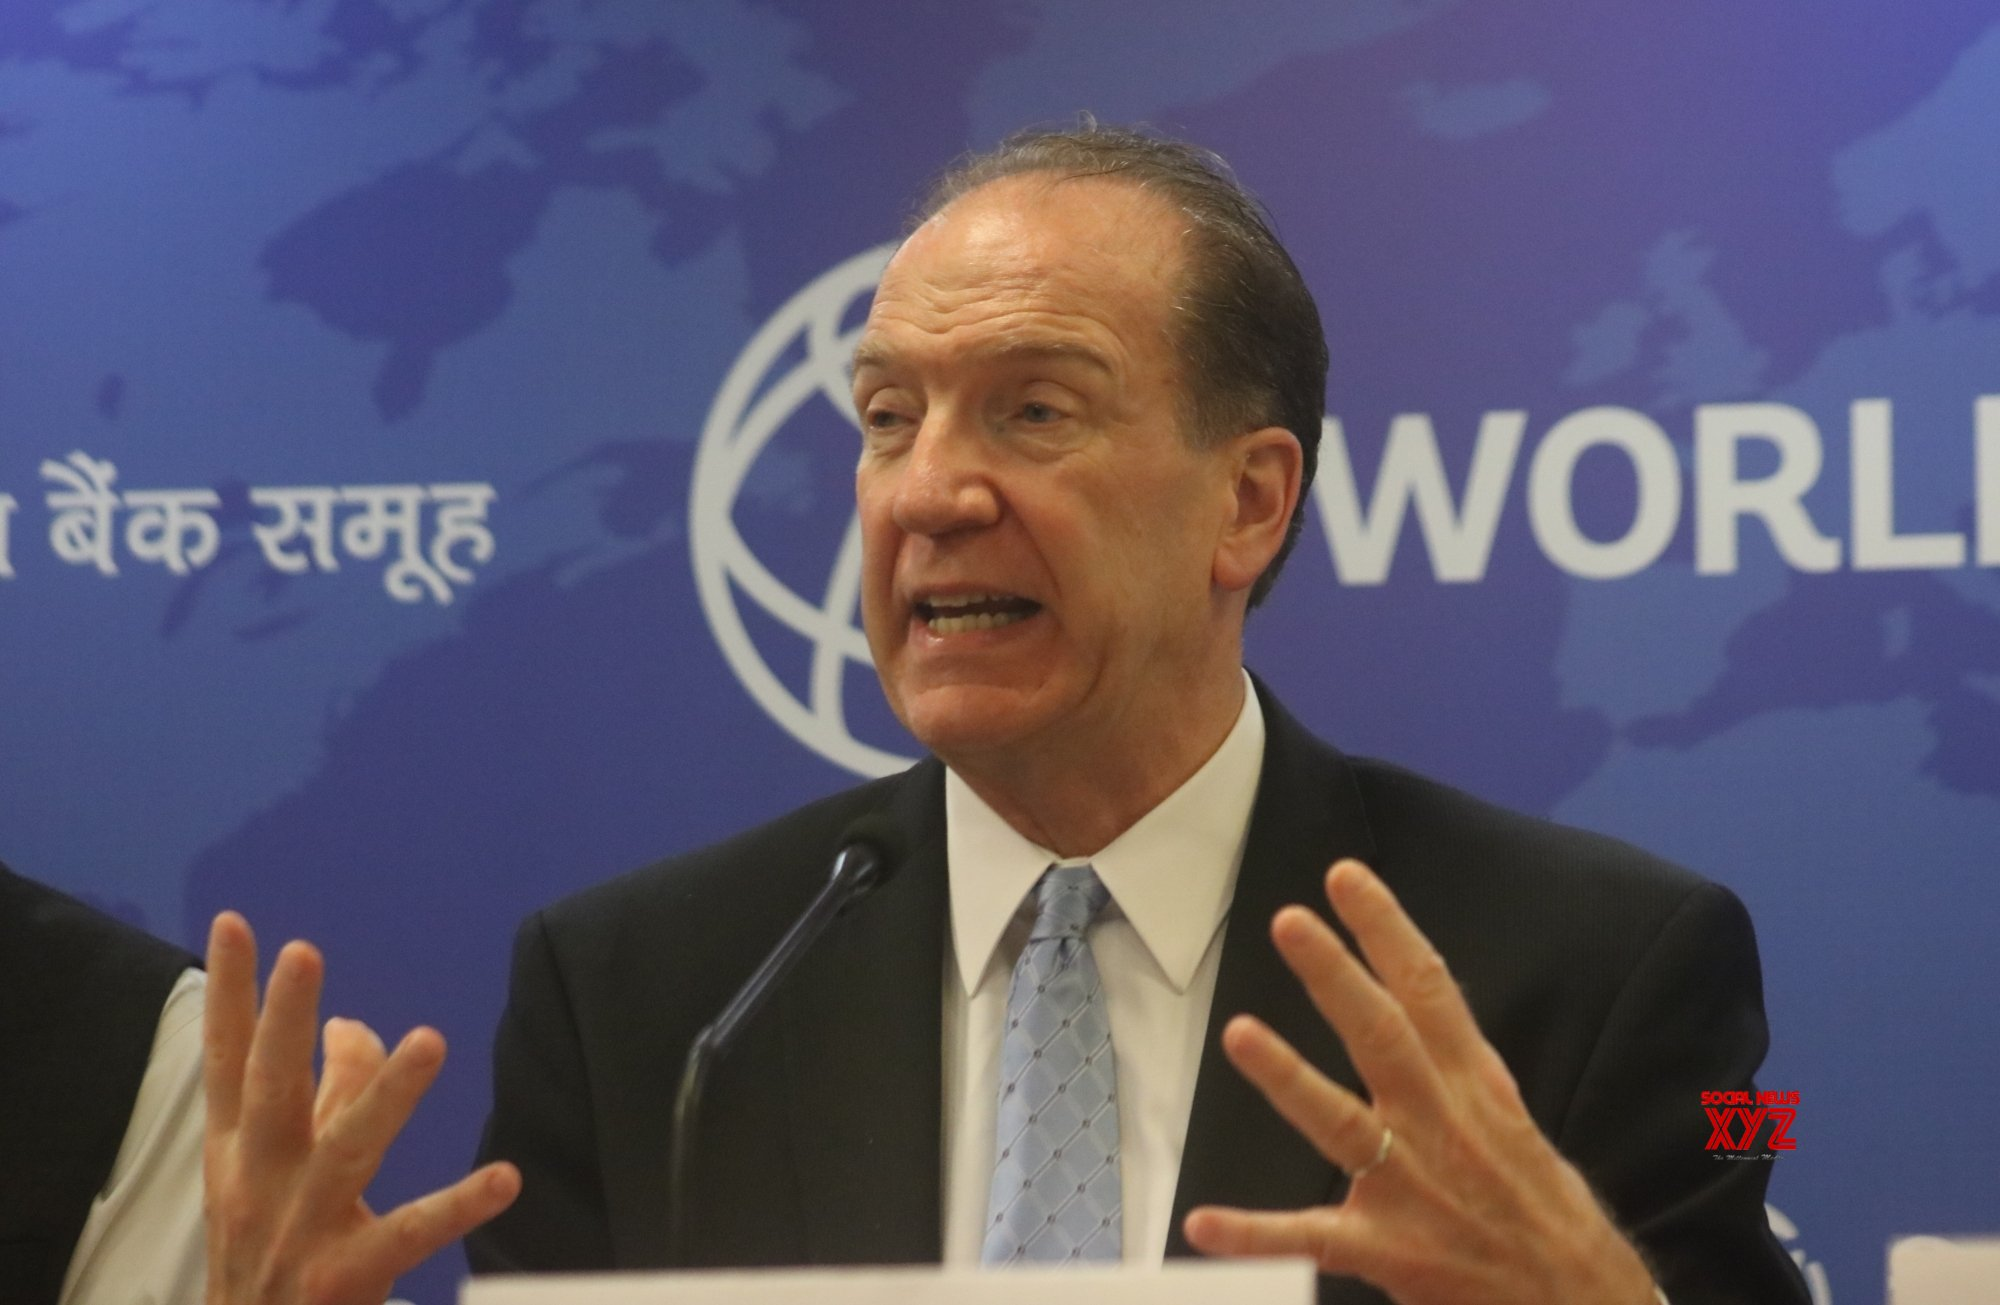 World Bank chief welcomes G20 progress on debt relief